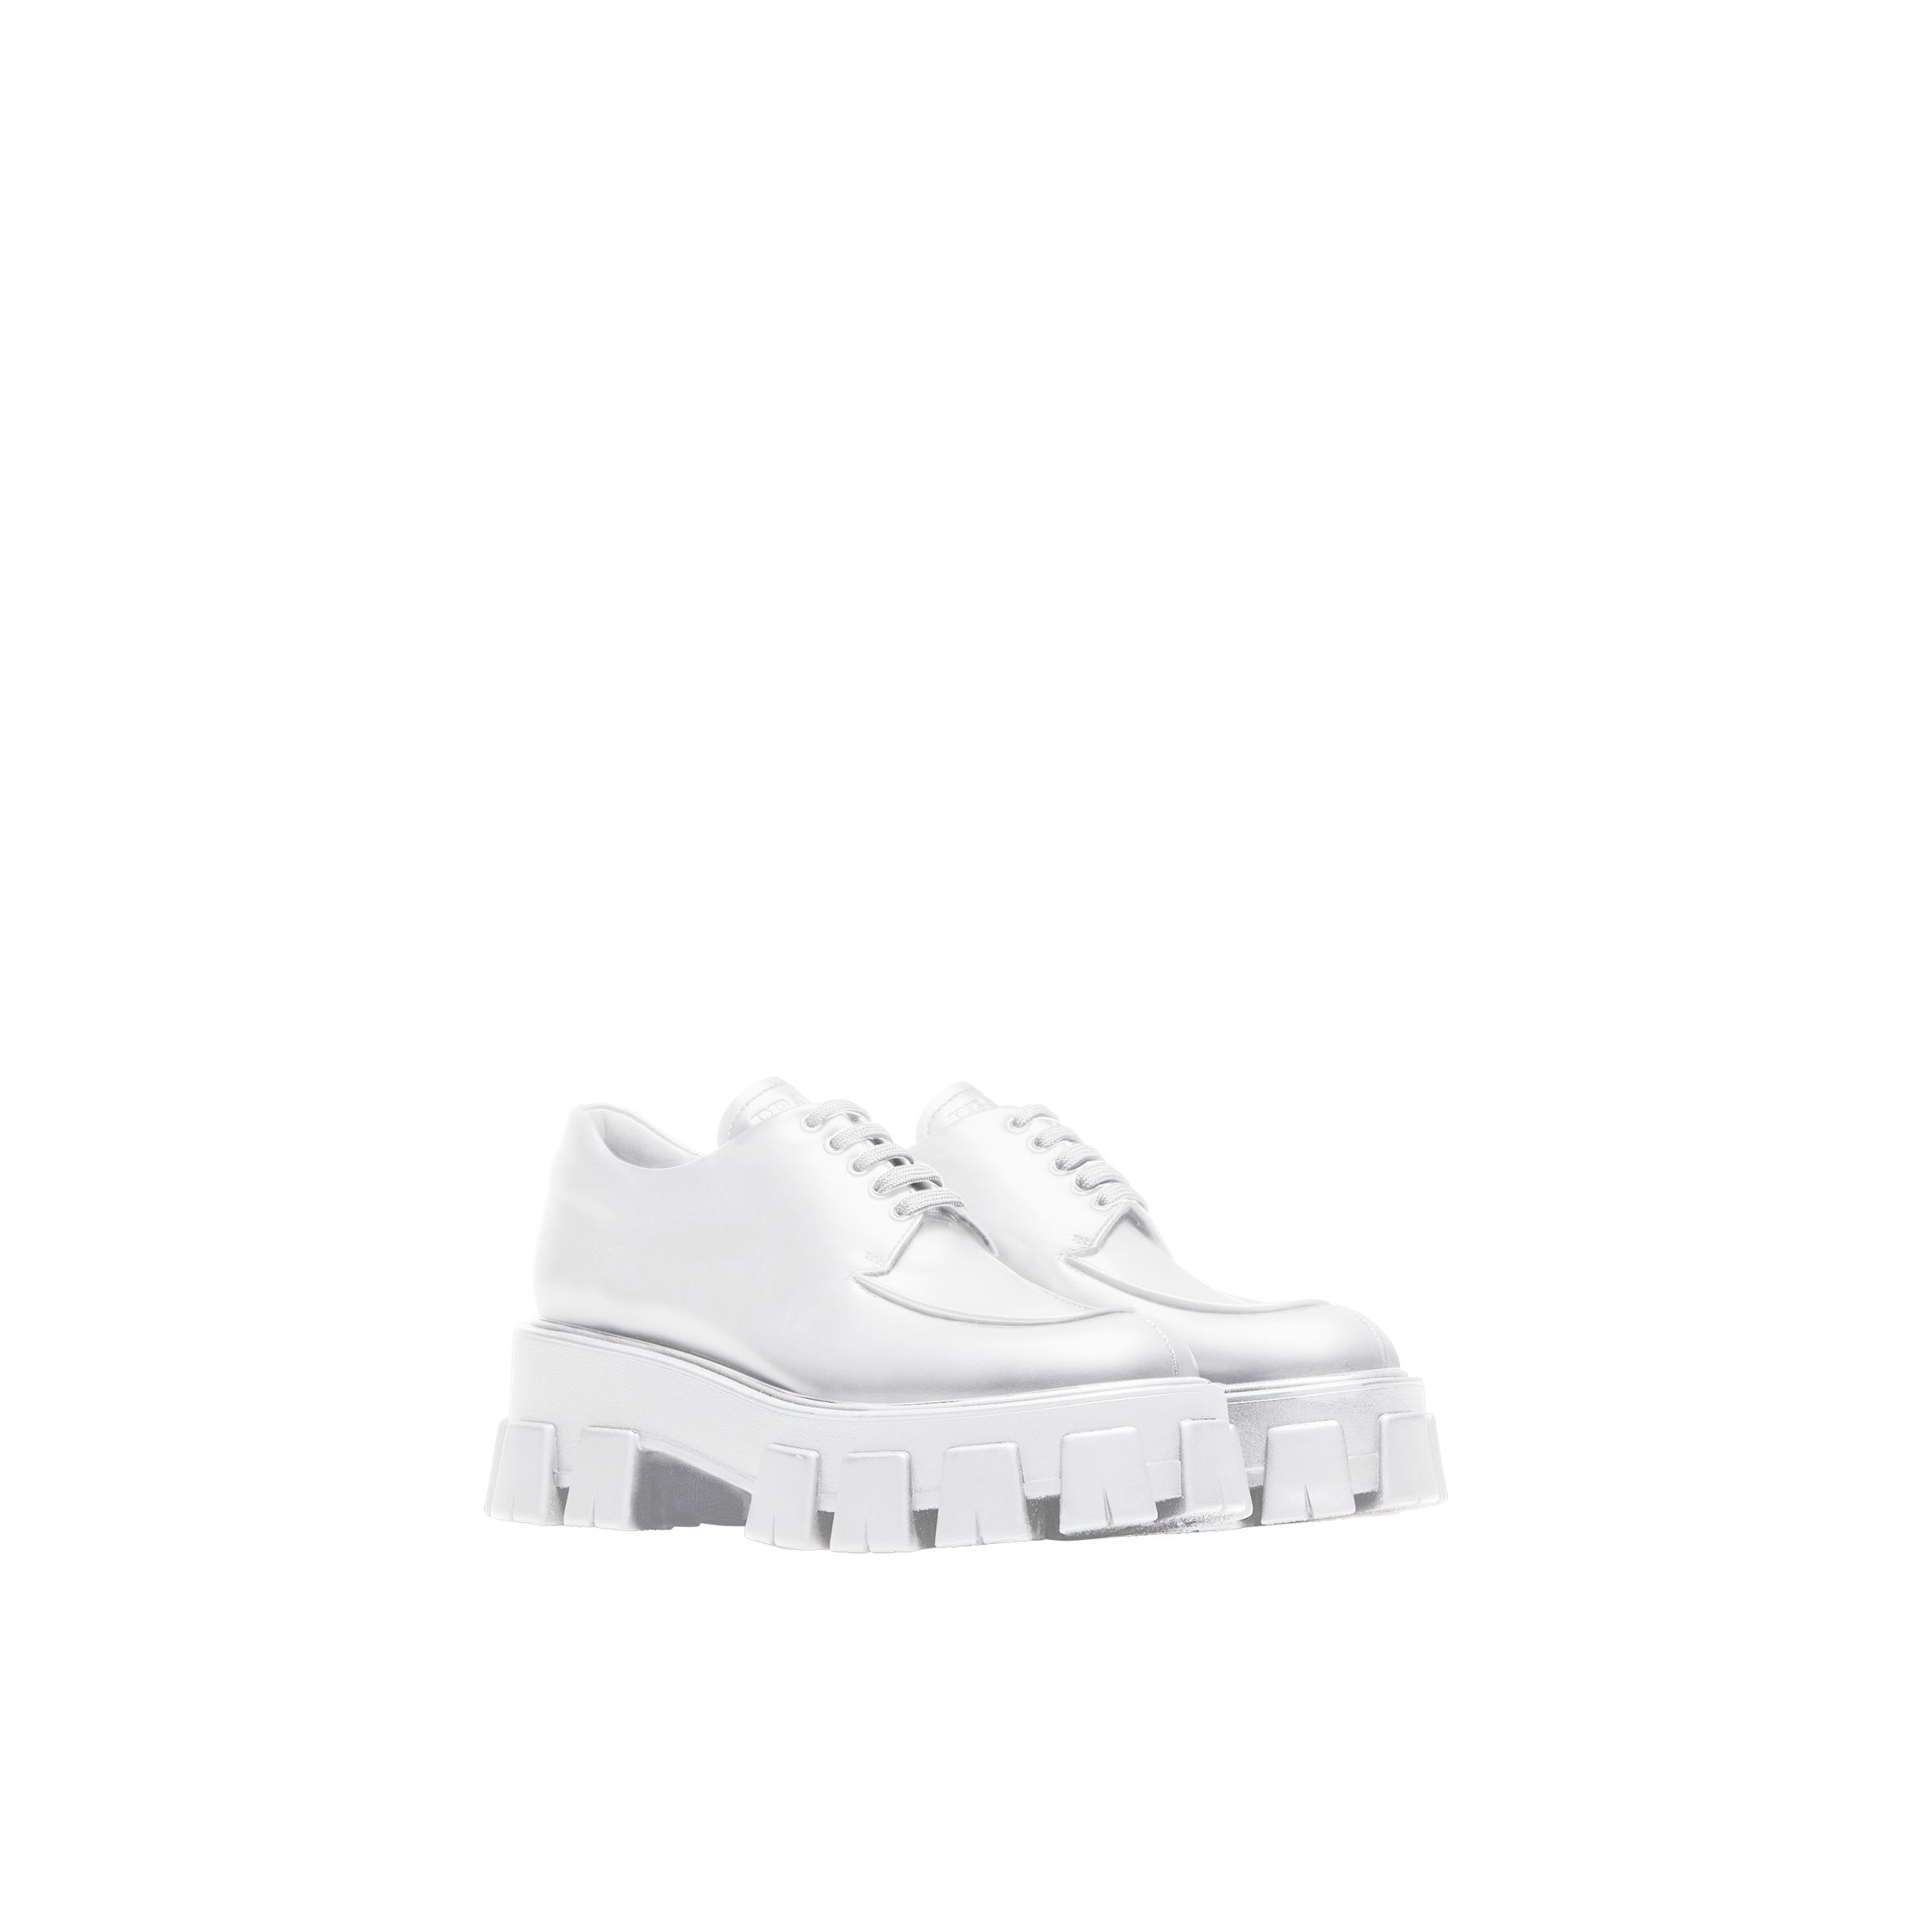 Monolith Brushed Leather Lace-up Shoes Women White